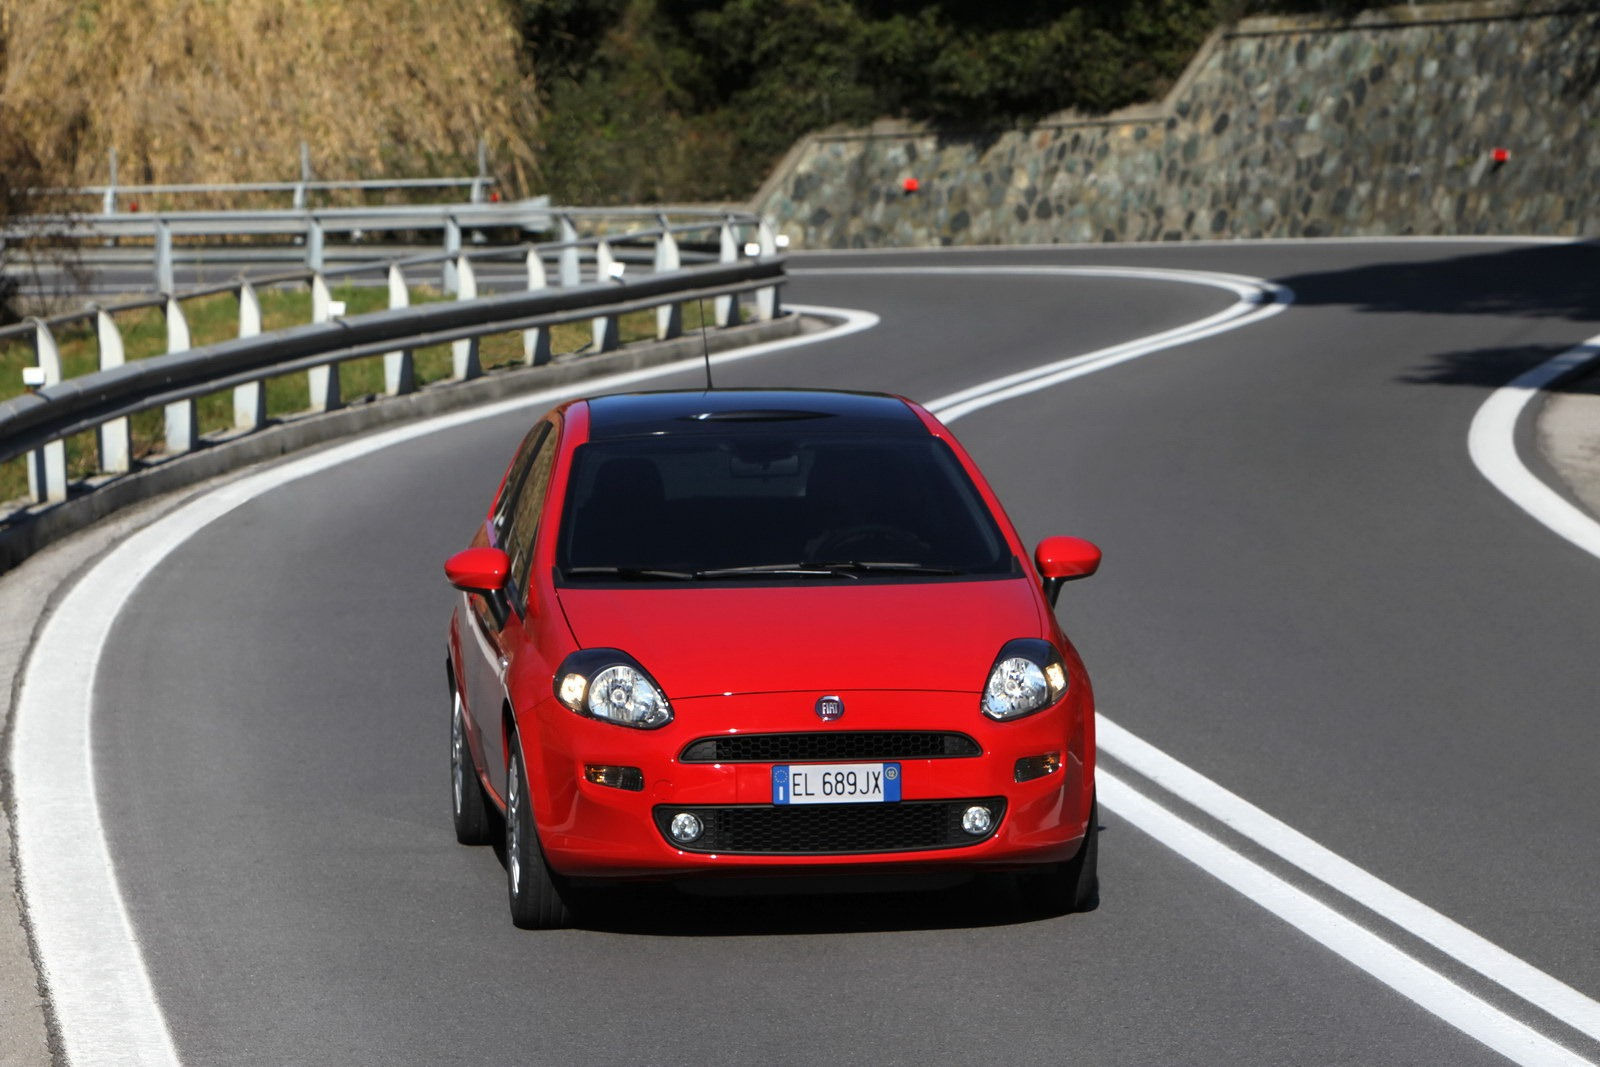 2012 fiat punto launched in europe video photo gallery autoevolution. Black Bedroom Furniture Sets. Home Design Ideas